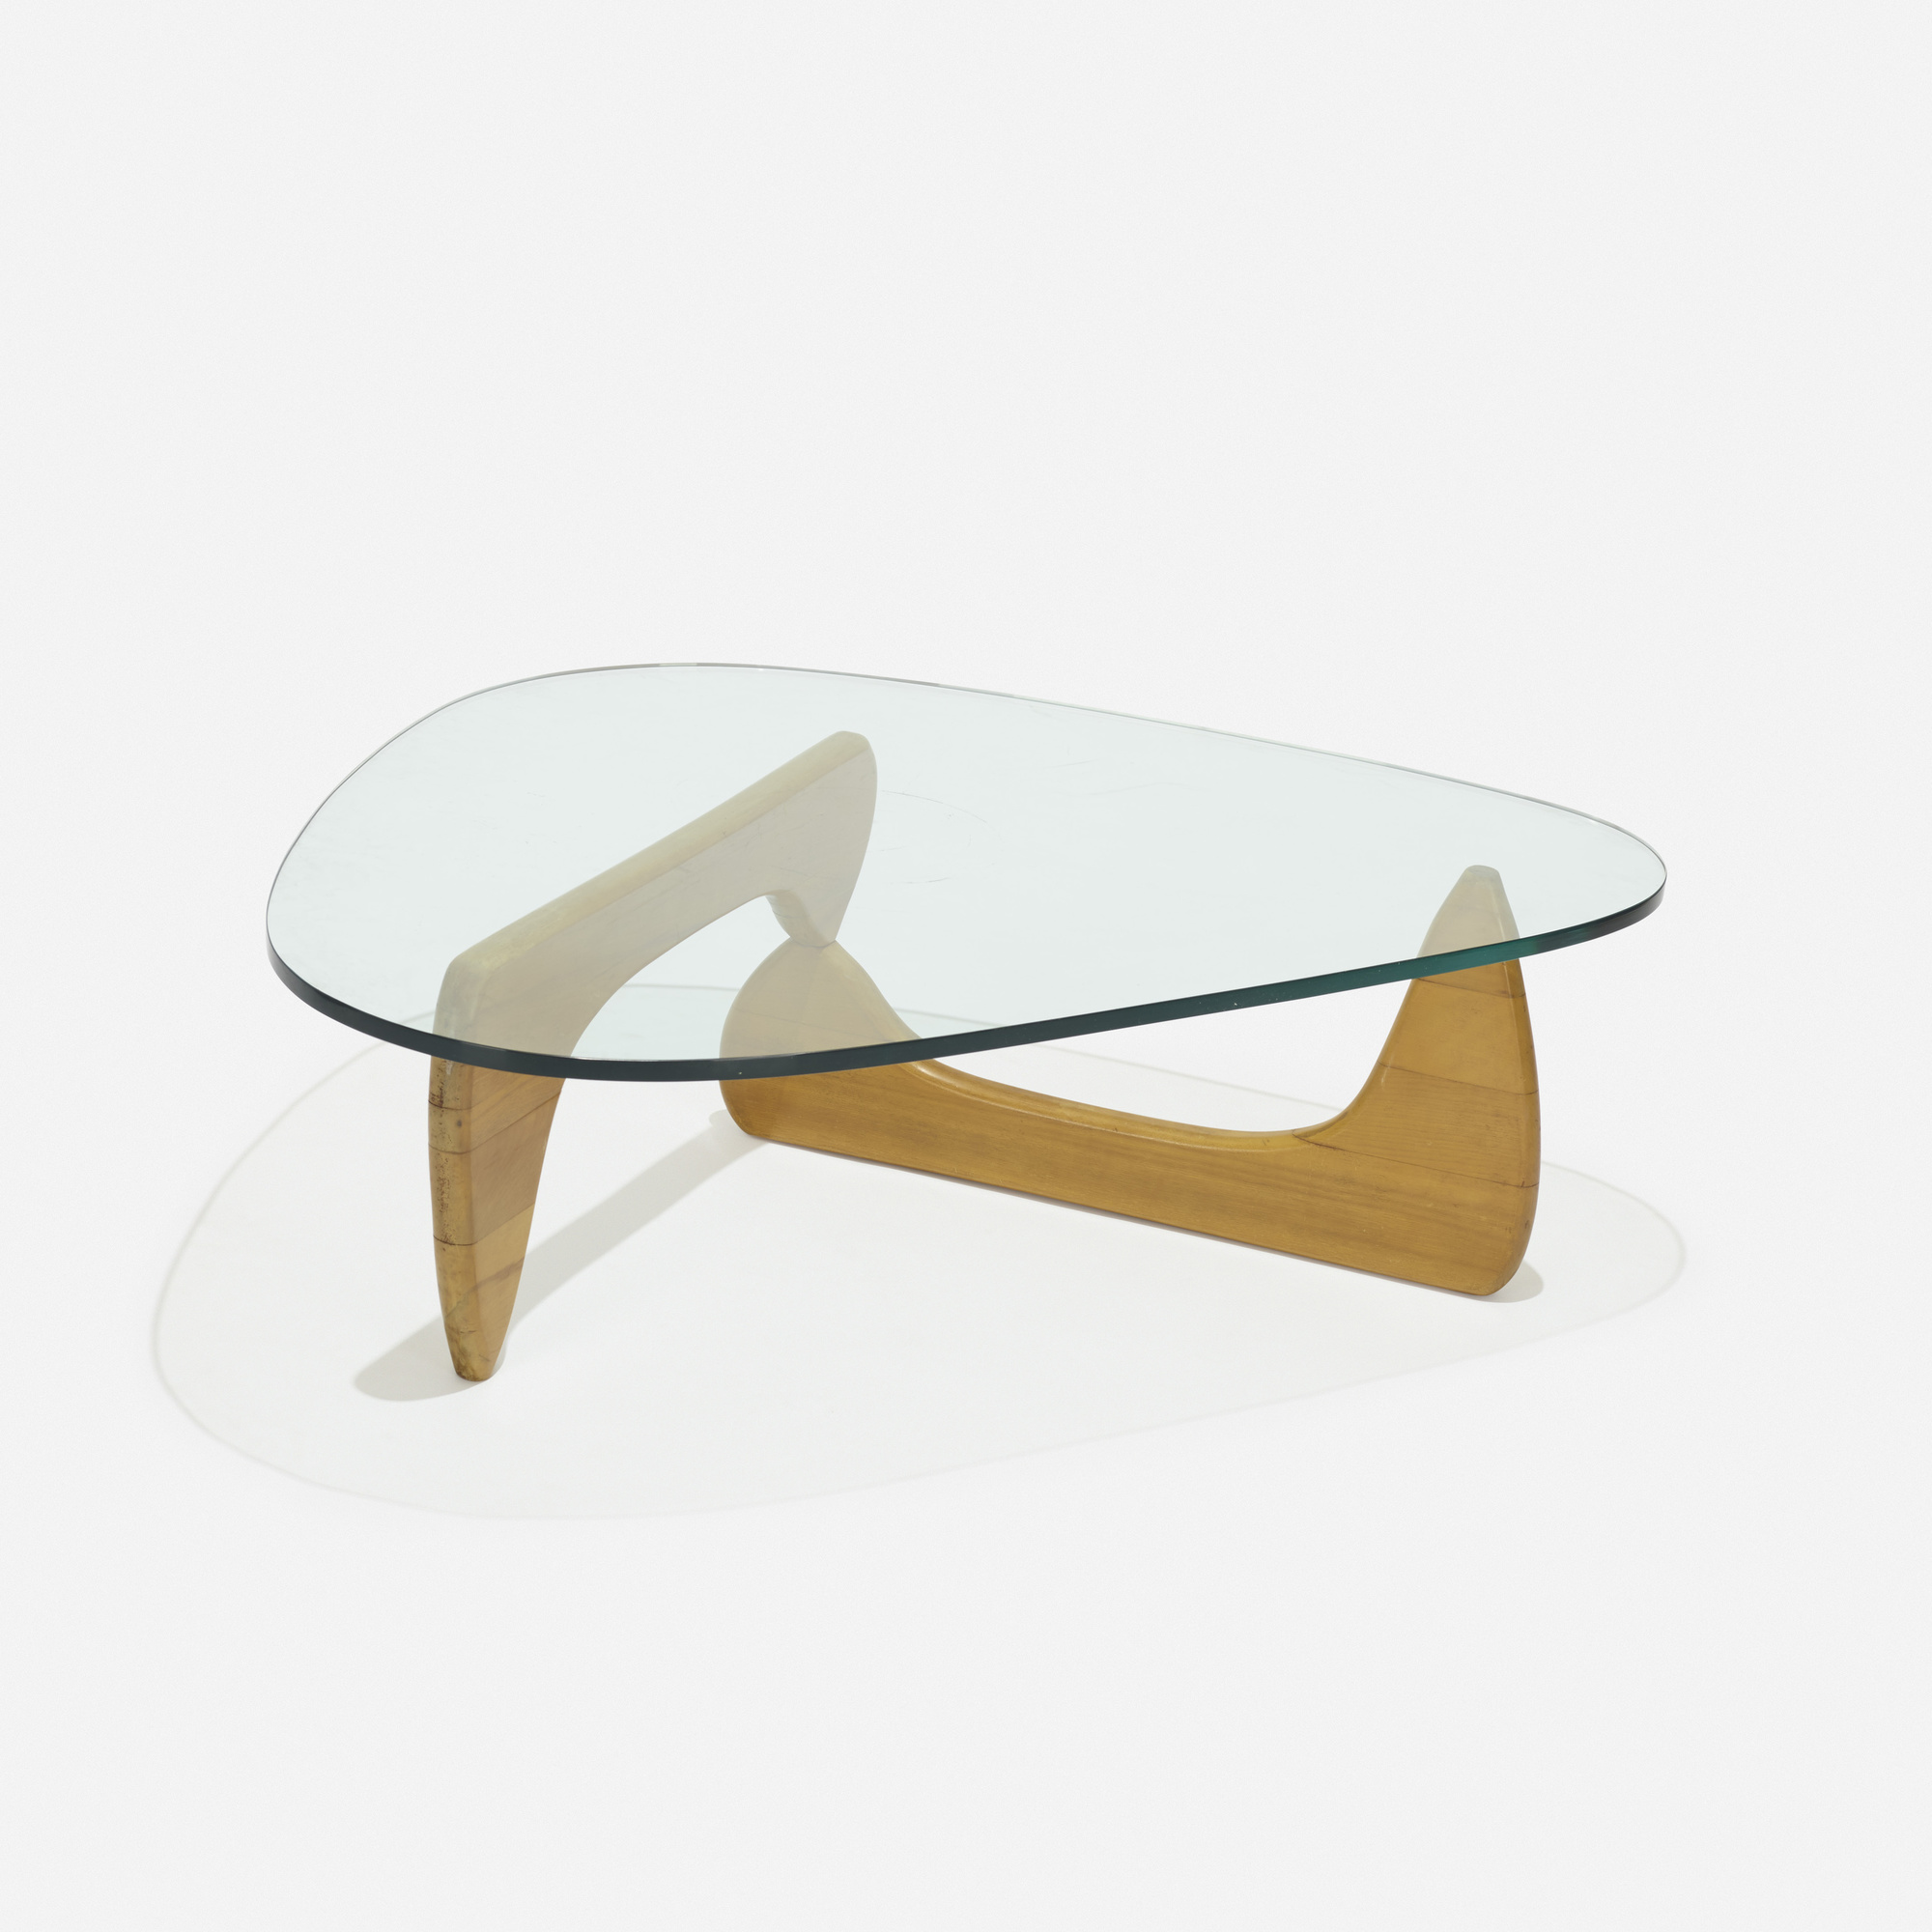 298 Isamu Noguchi coffee table model IN 50 American Design